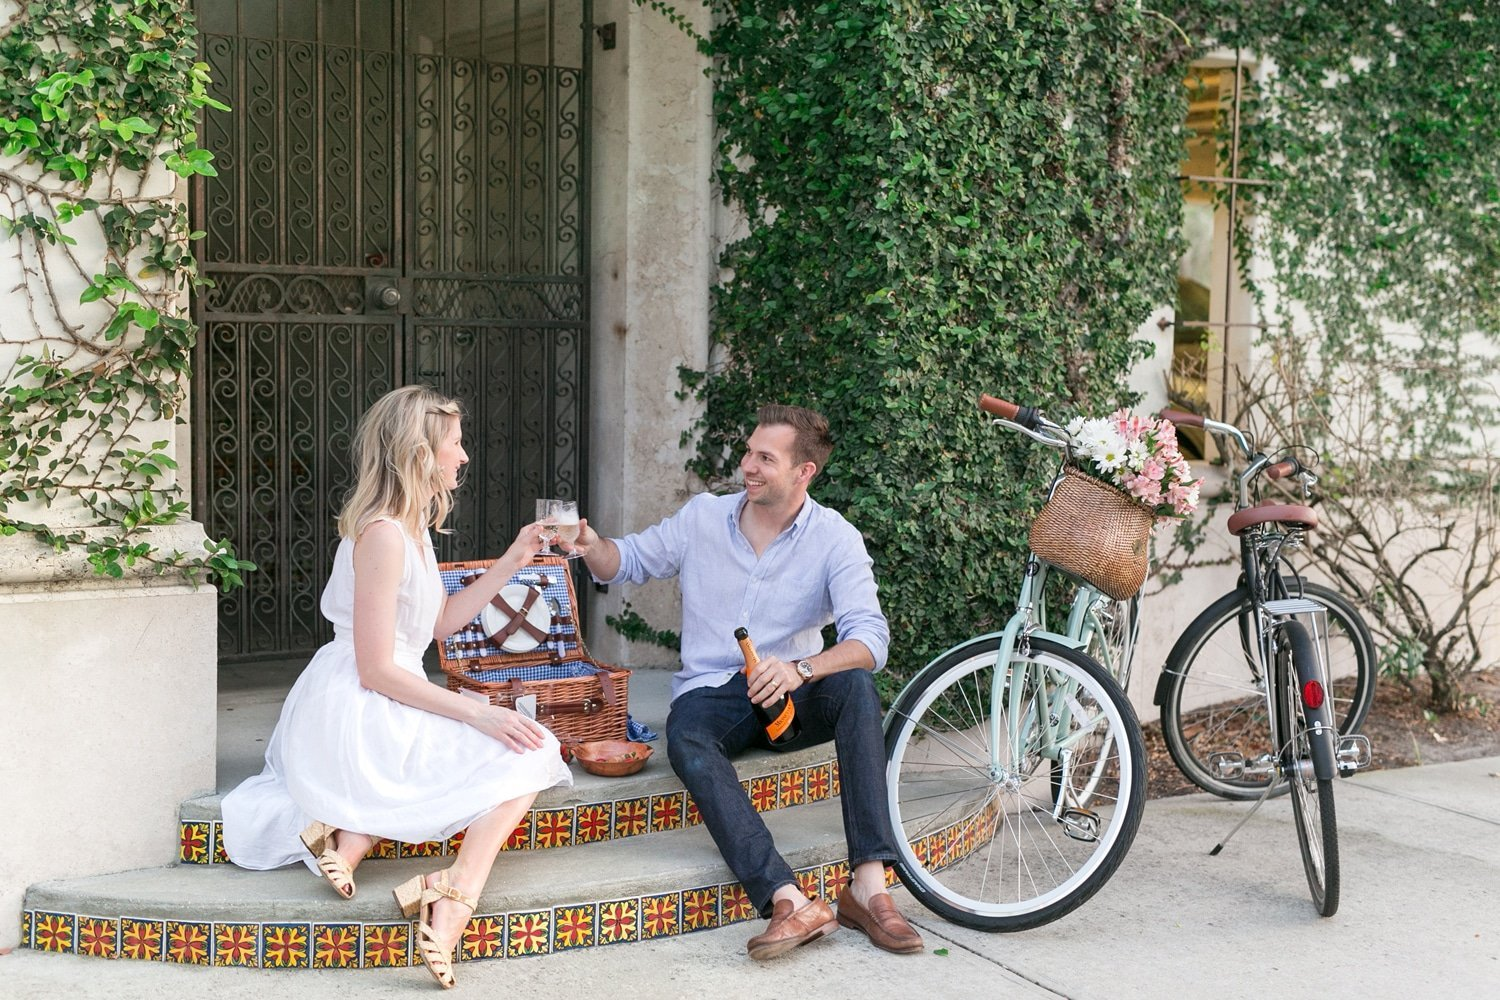 Blogger Ashley Brooke shares how to perfect the neighborhood date night! | www.ashleybrookedesigns.com